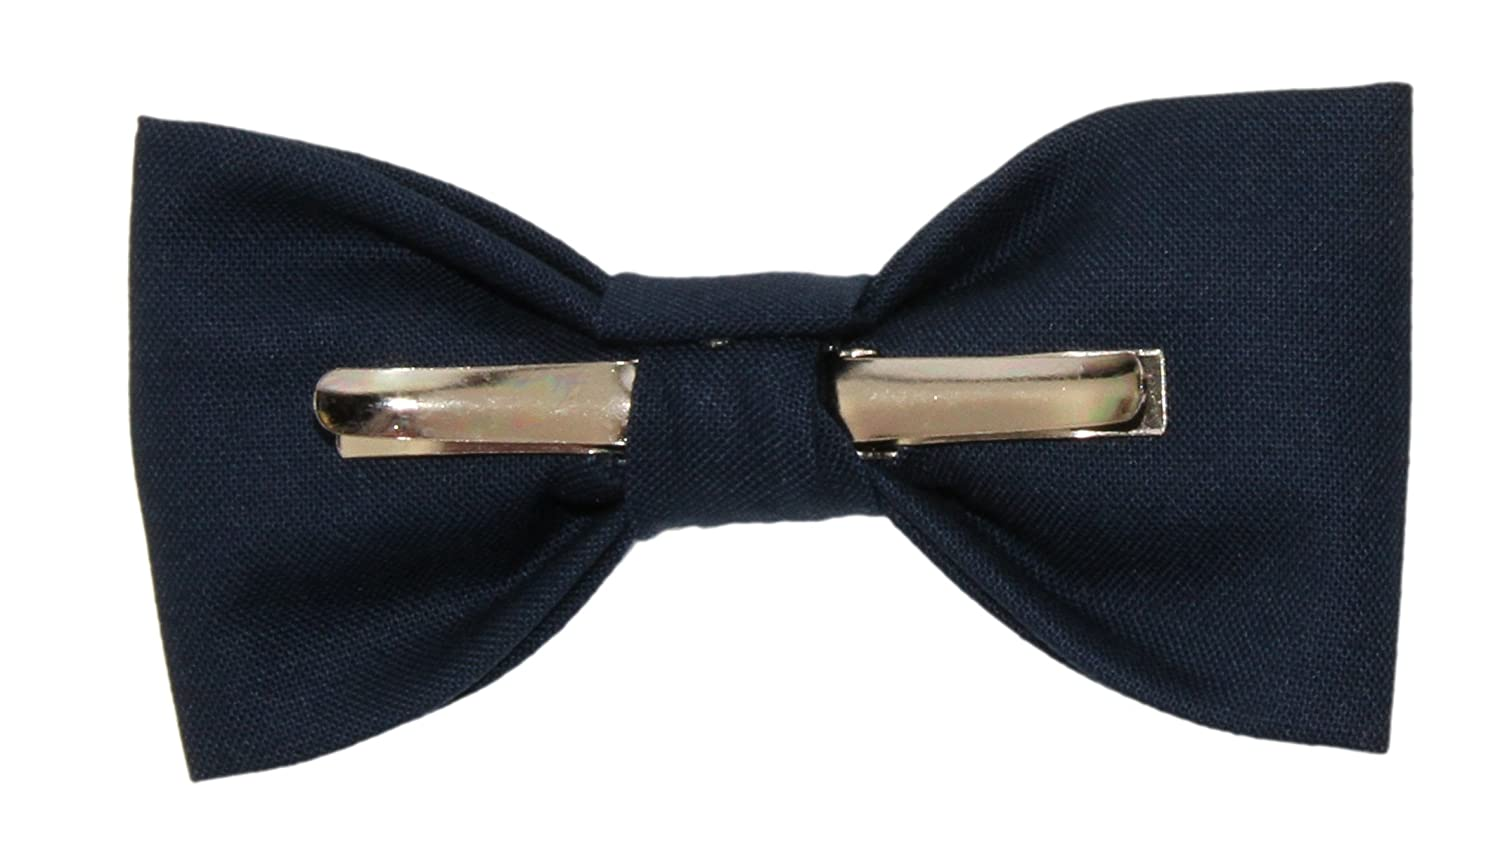 Toddler Boy 3T 4T Navy Blue Clip On Cotton Bow Tie Bowtie by amy2004marie 110164